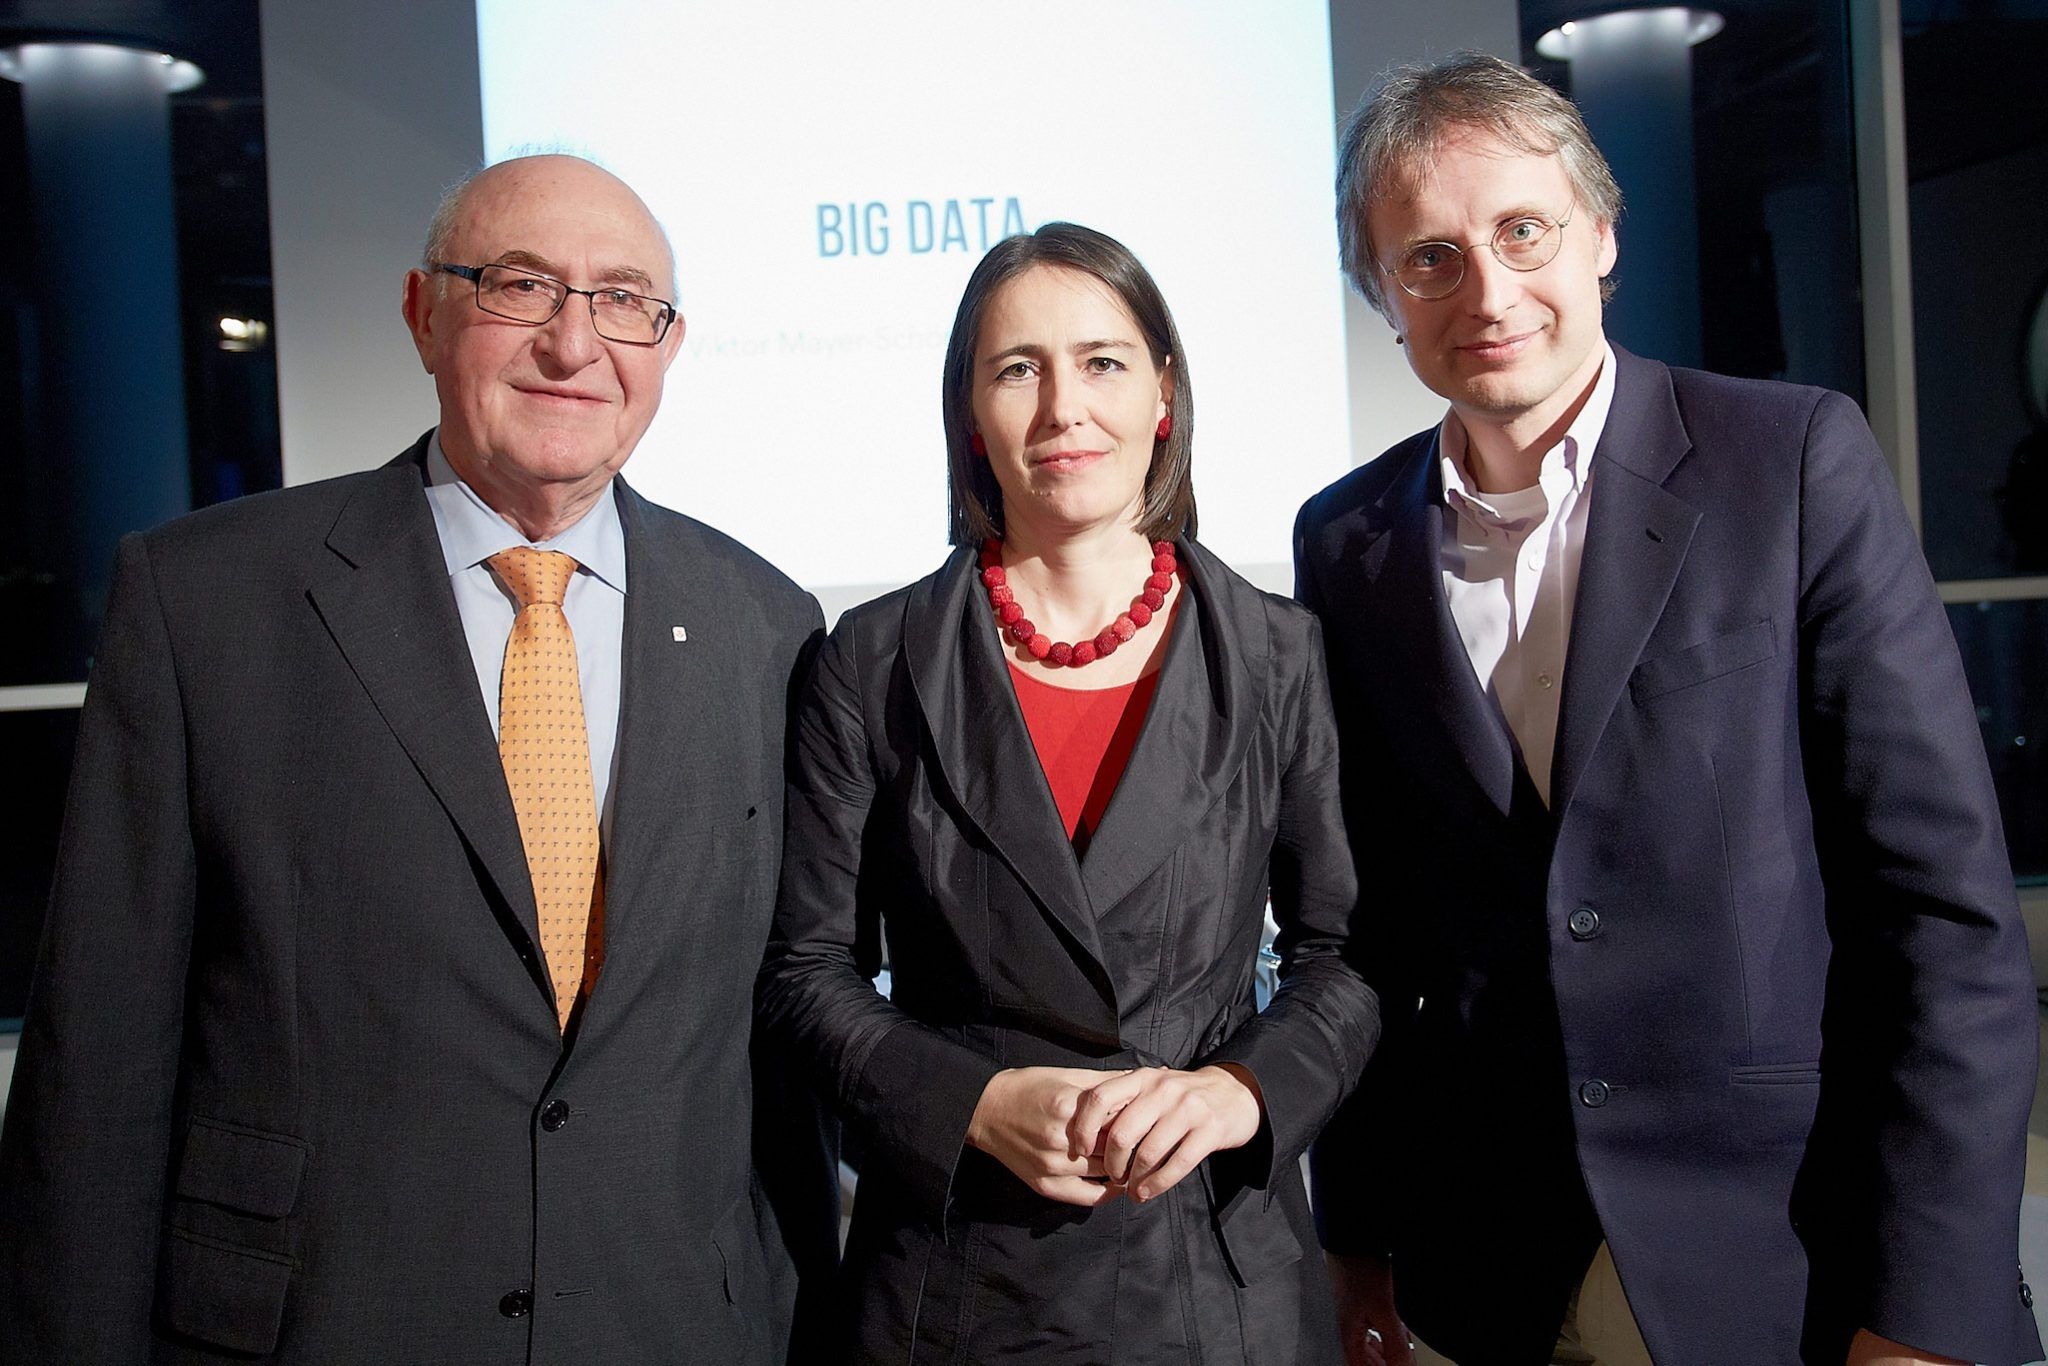 Zukunft Im Turm The Consequences Of Big Data Wiener Stadtische